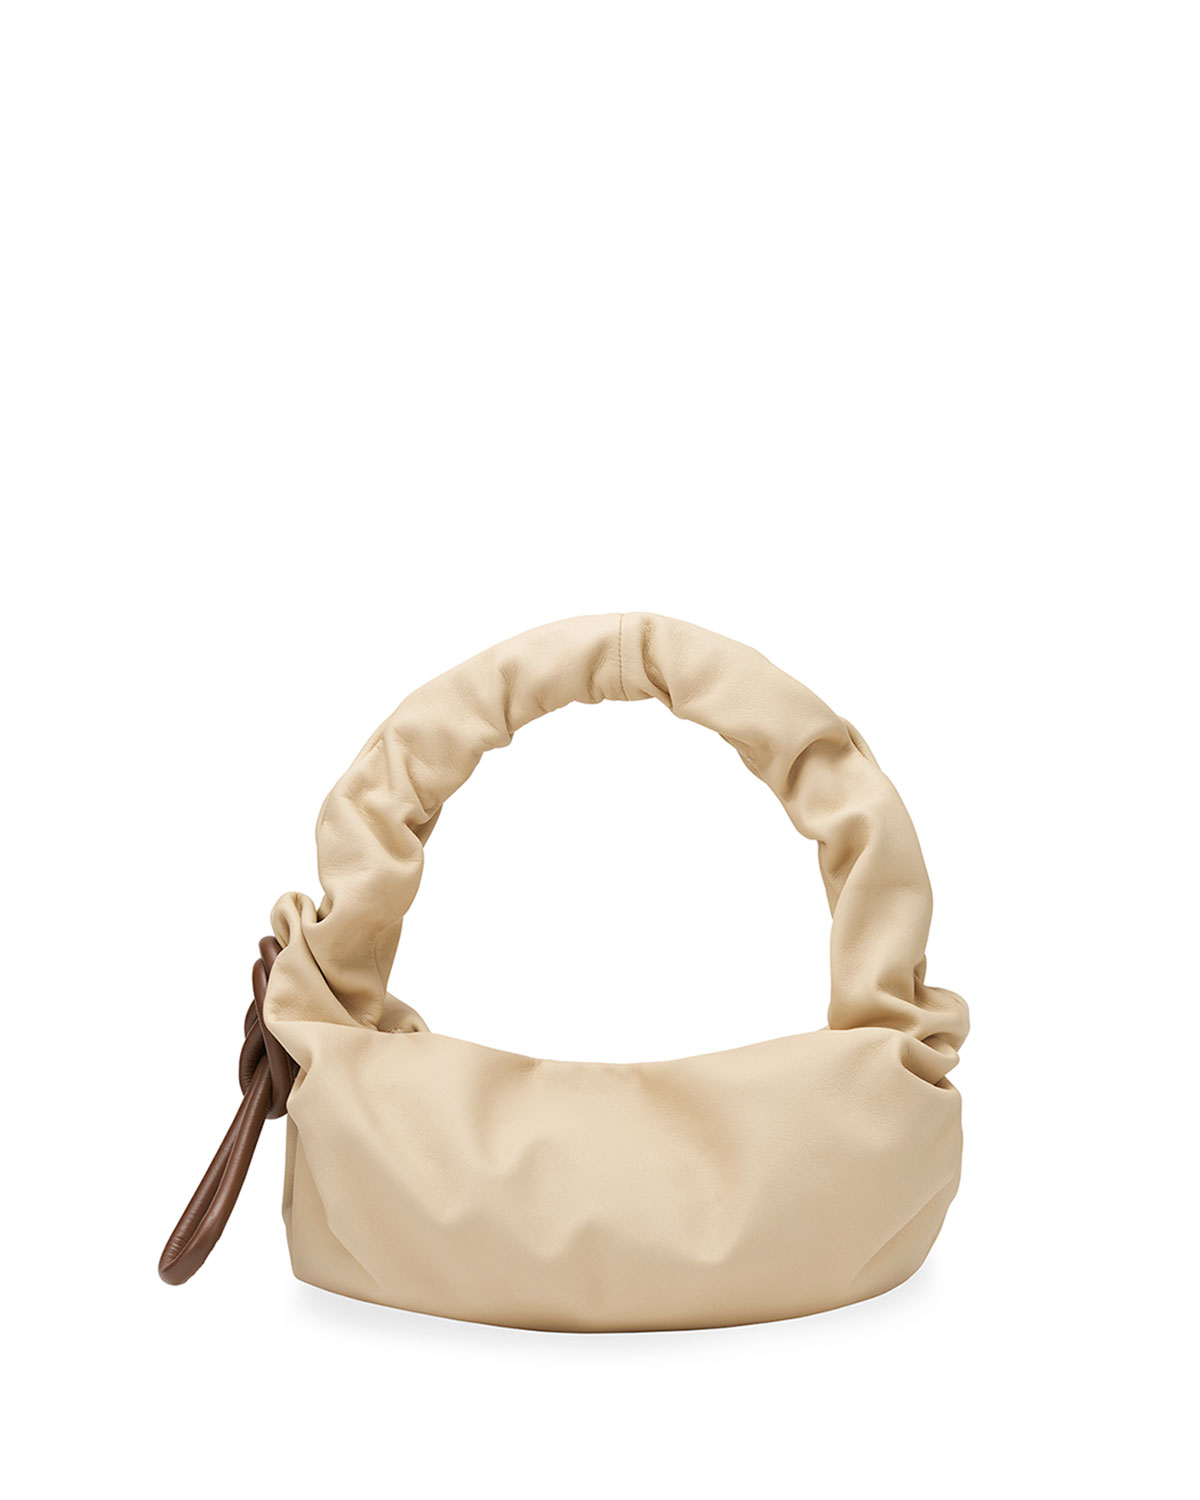 Lola Beads Ruched Top-Handle Bag